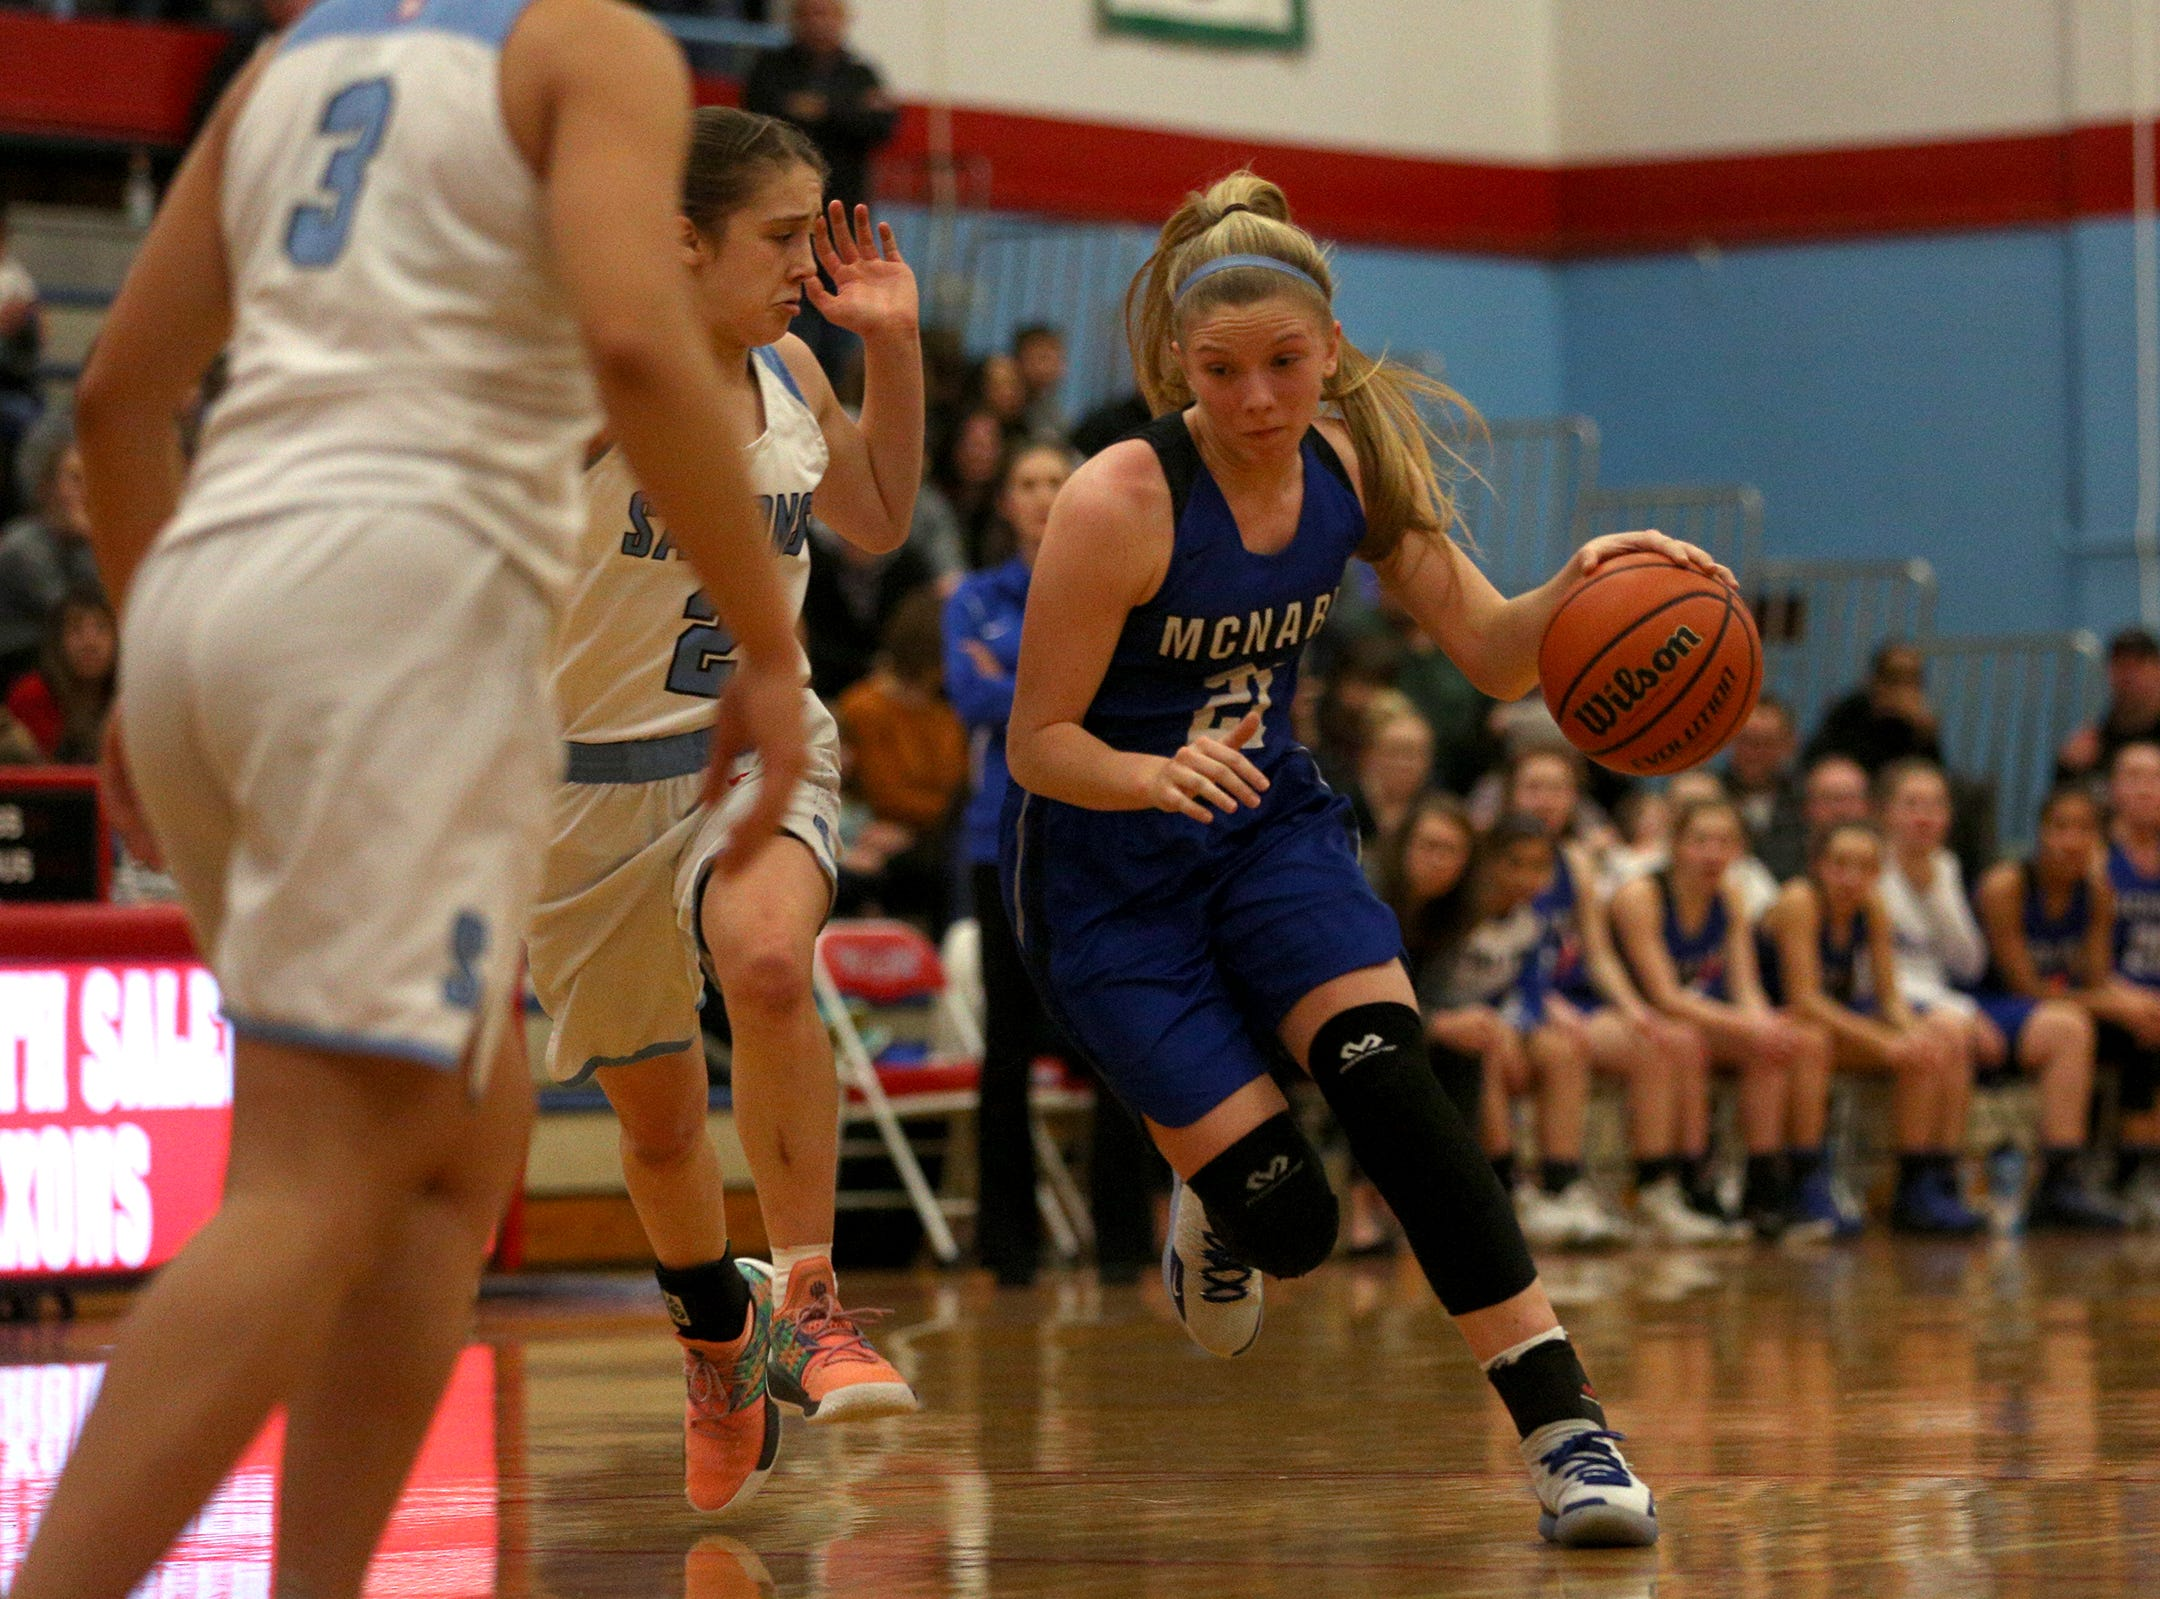 McNary's Abigail Hawley gets across South Salem's defense during the South Salem High School girls basketball game against McNary High School in Salem on Thursday, Jan. 31, 2019.